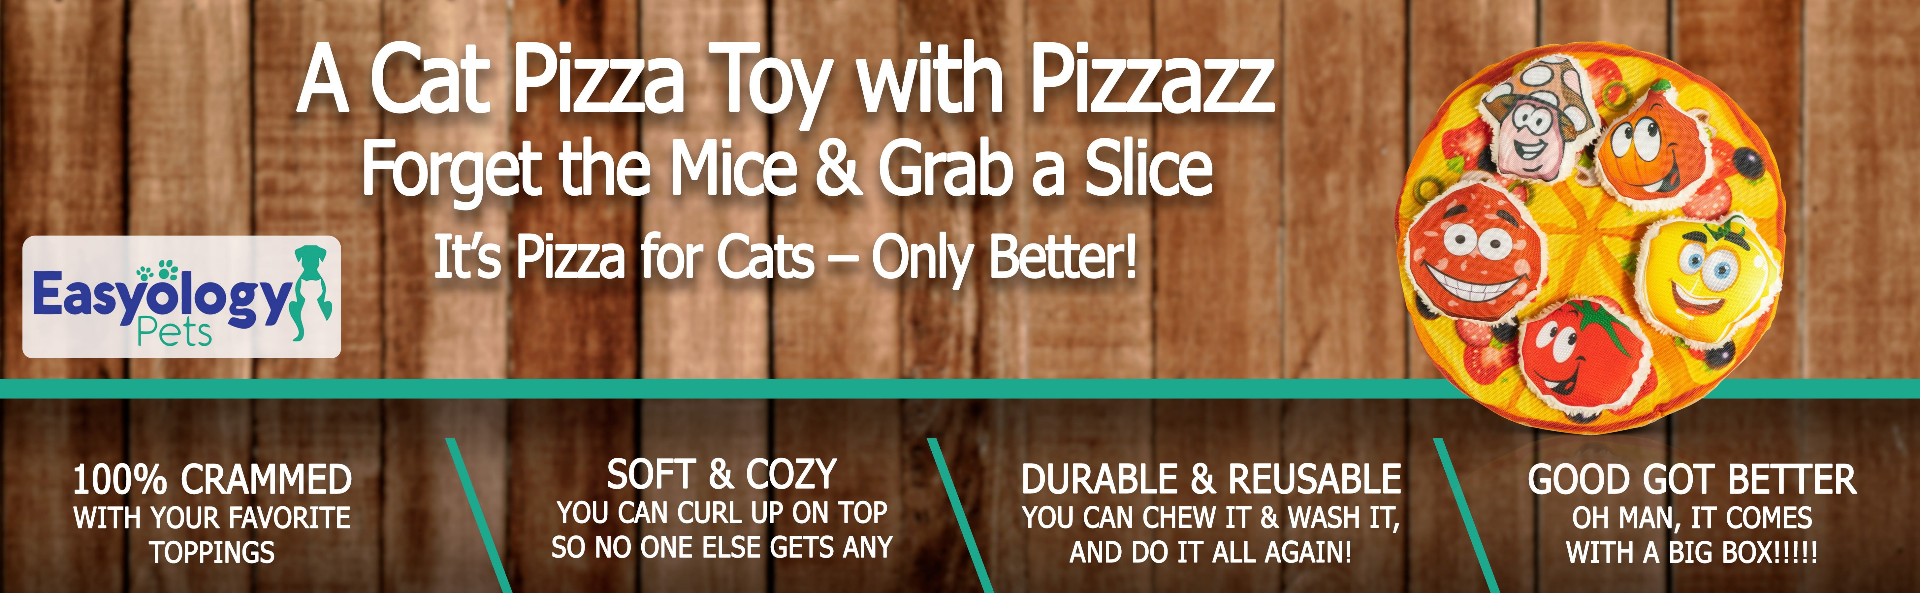 Easyology Pets Cat Pizza Party Toy